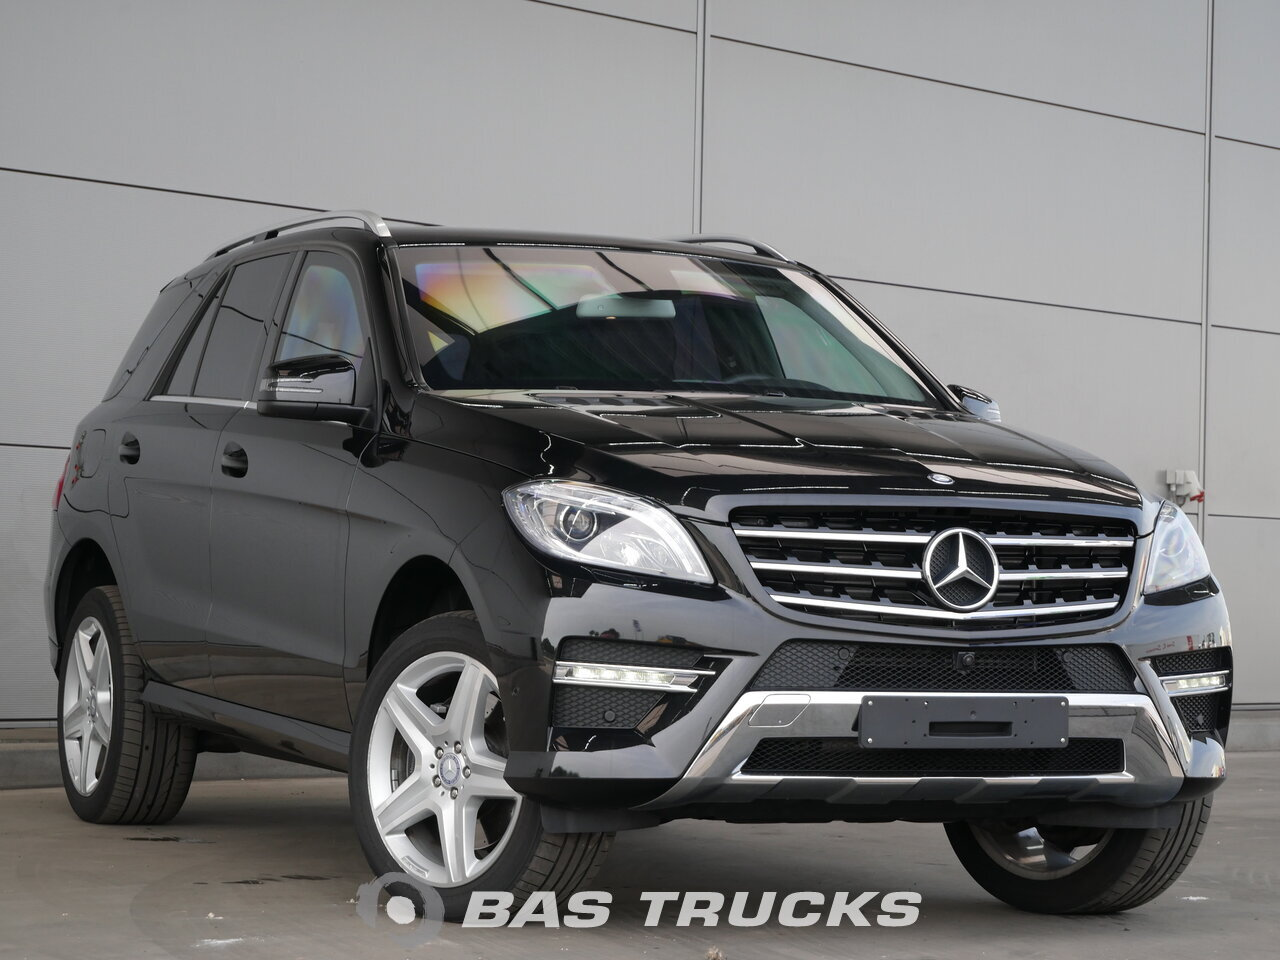 mercedes ml 350 bluetec 4matic guard b4 car bas vans. Black Bedroom Furniture Sets. Home Design Ideas